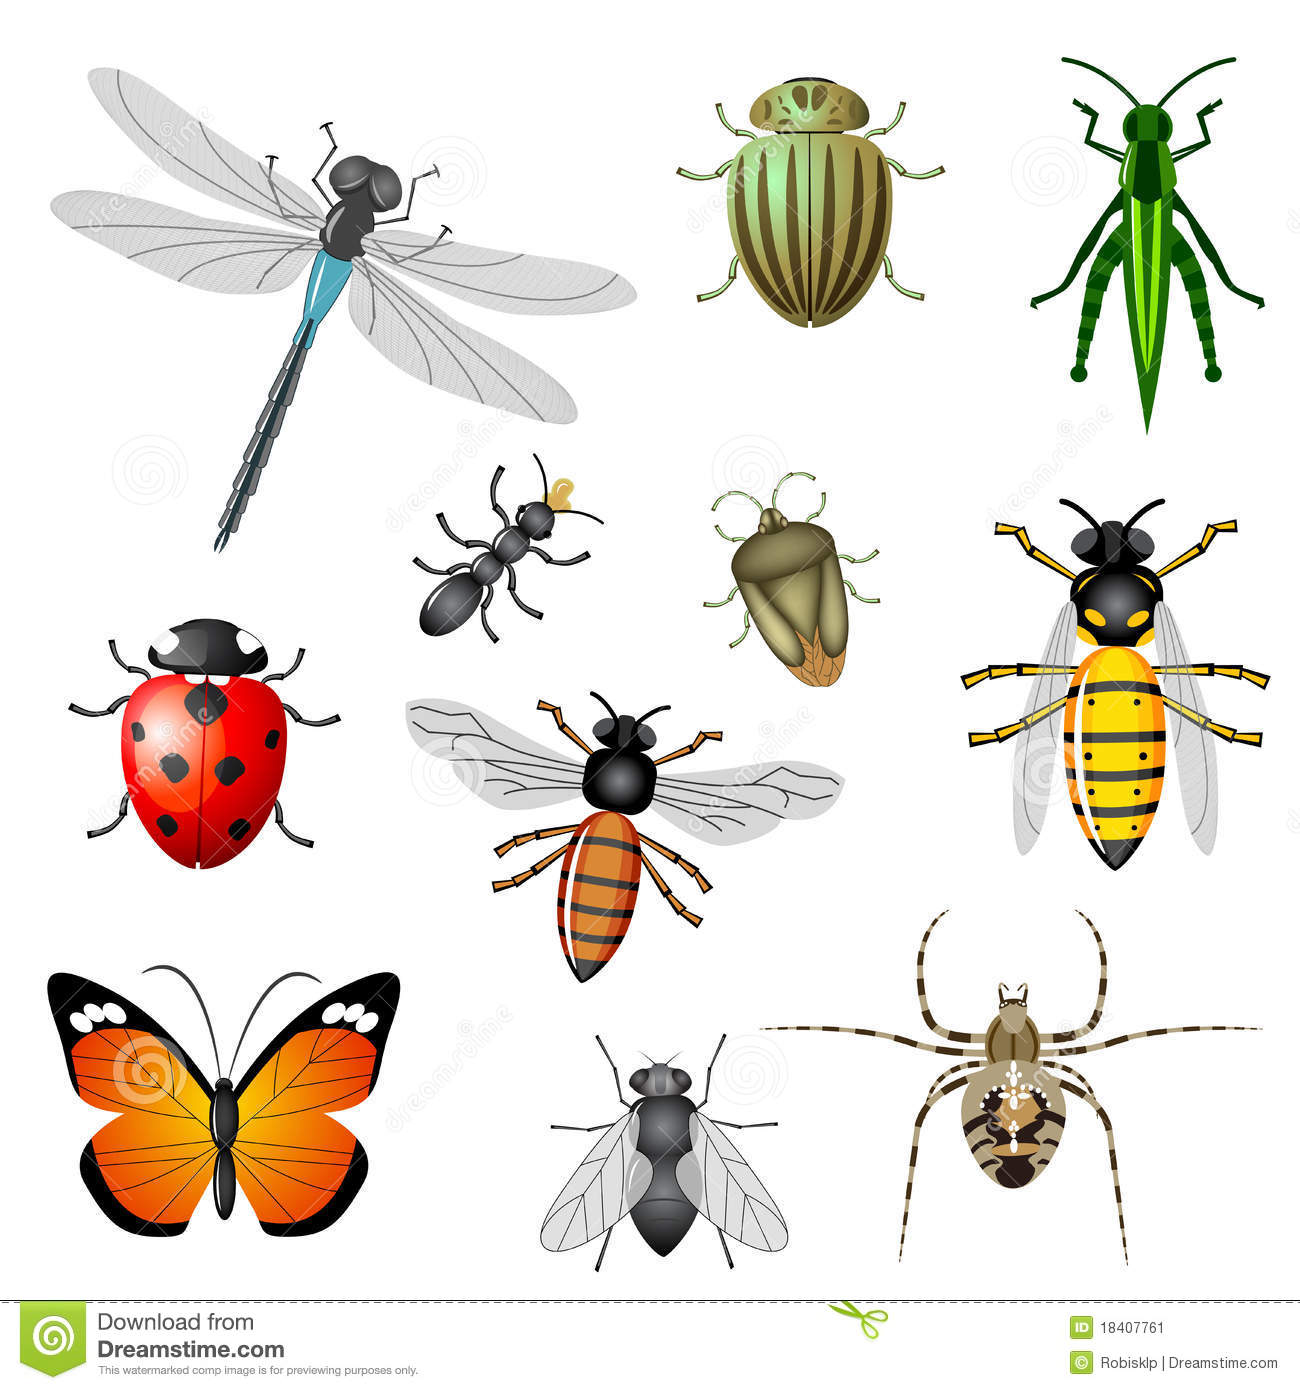 Download Insects and bugs stock vector. Illustration of butterfly - 18407761